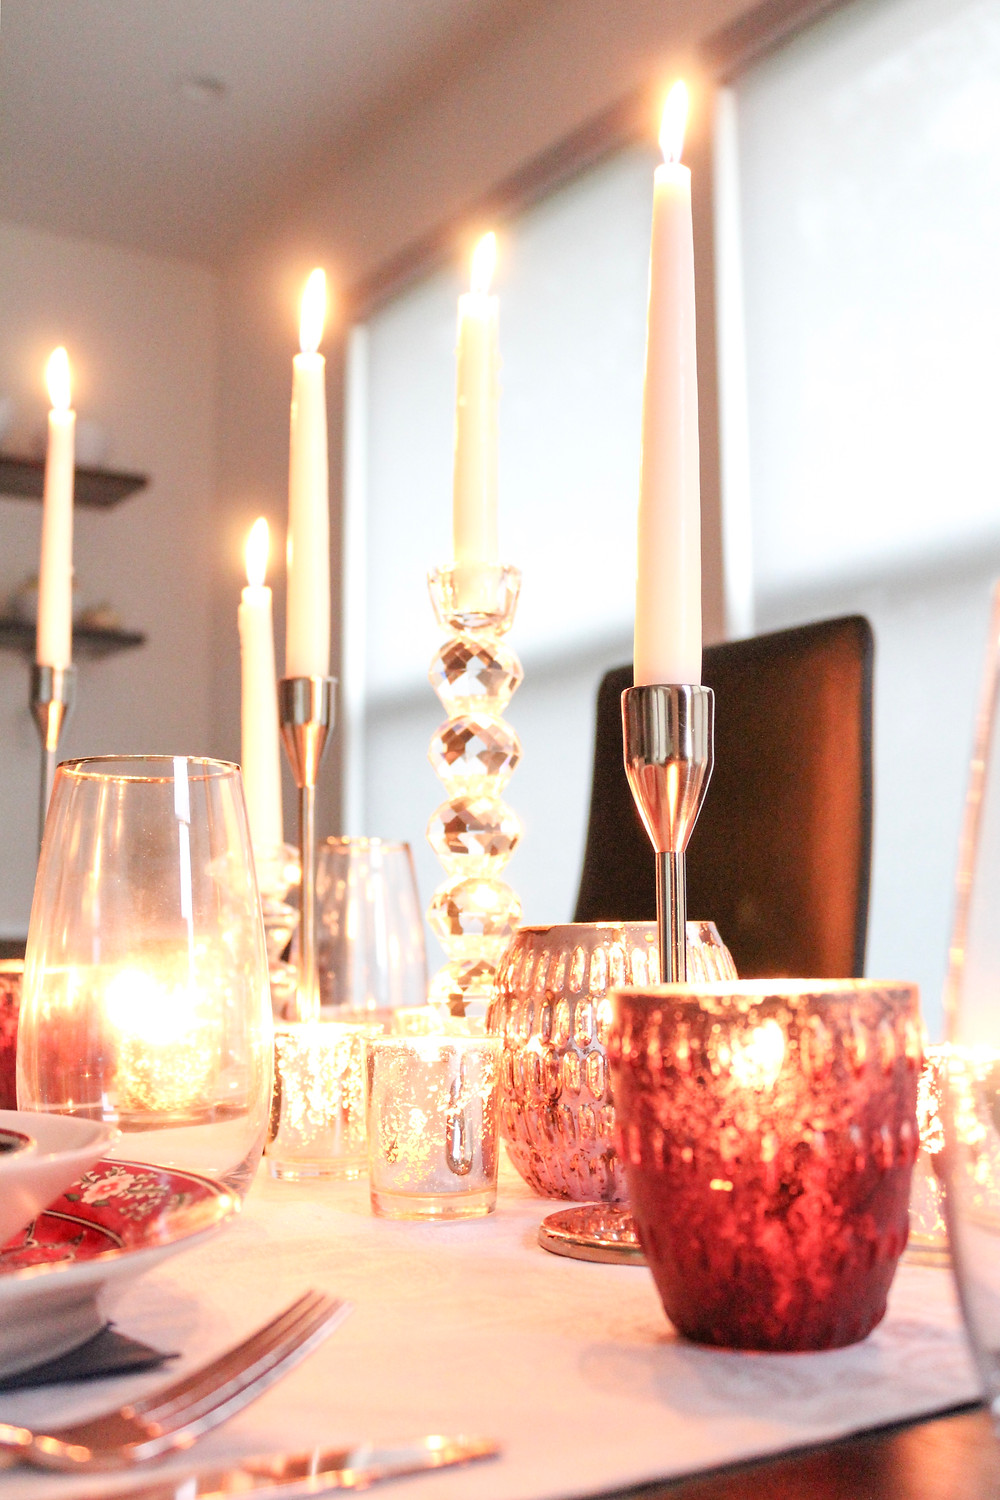 Five Easy Steps To Set A Flawless Diwali (Or Any Other Holiday) Table. #holidaydecor #holidaytablescape #diwalidecor